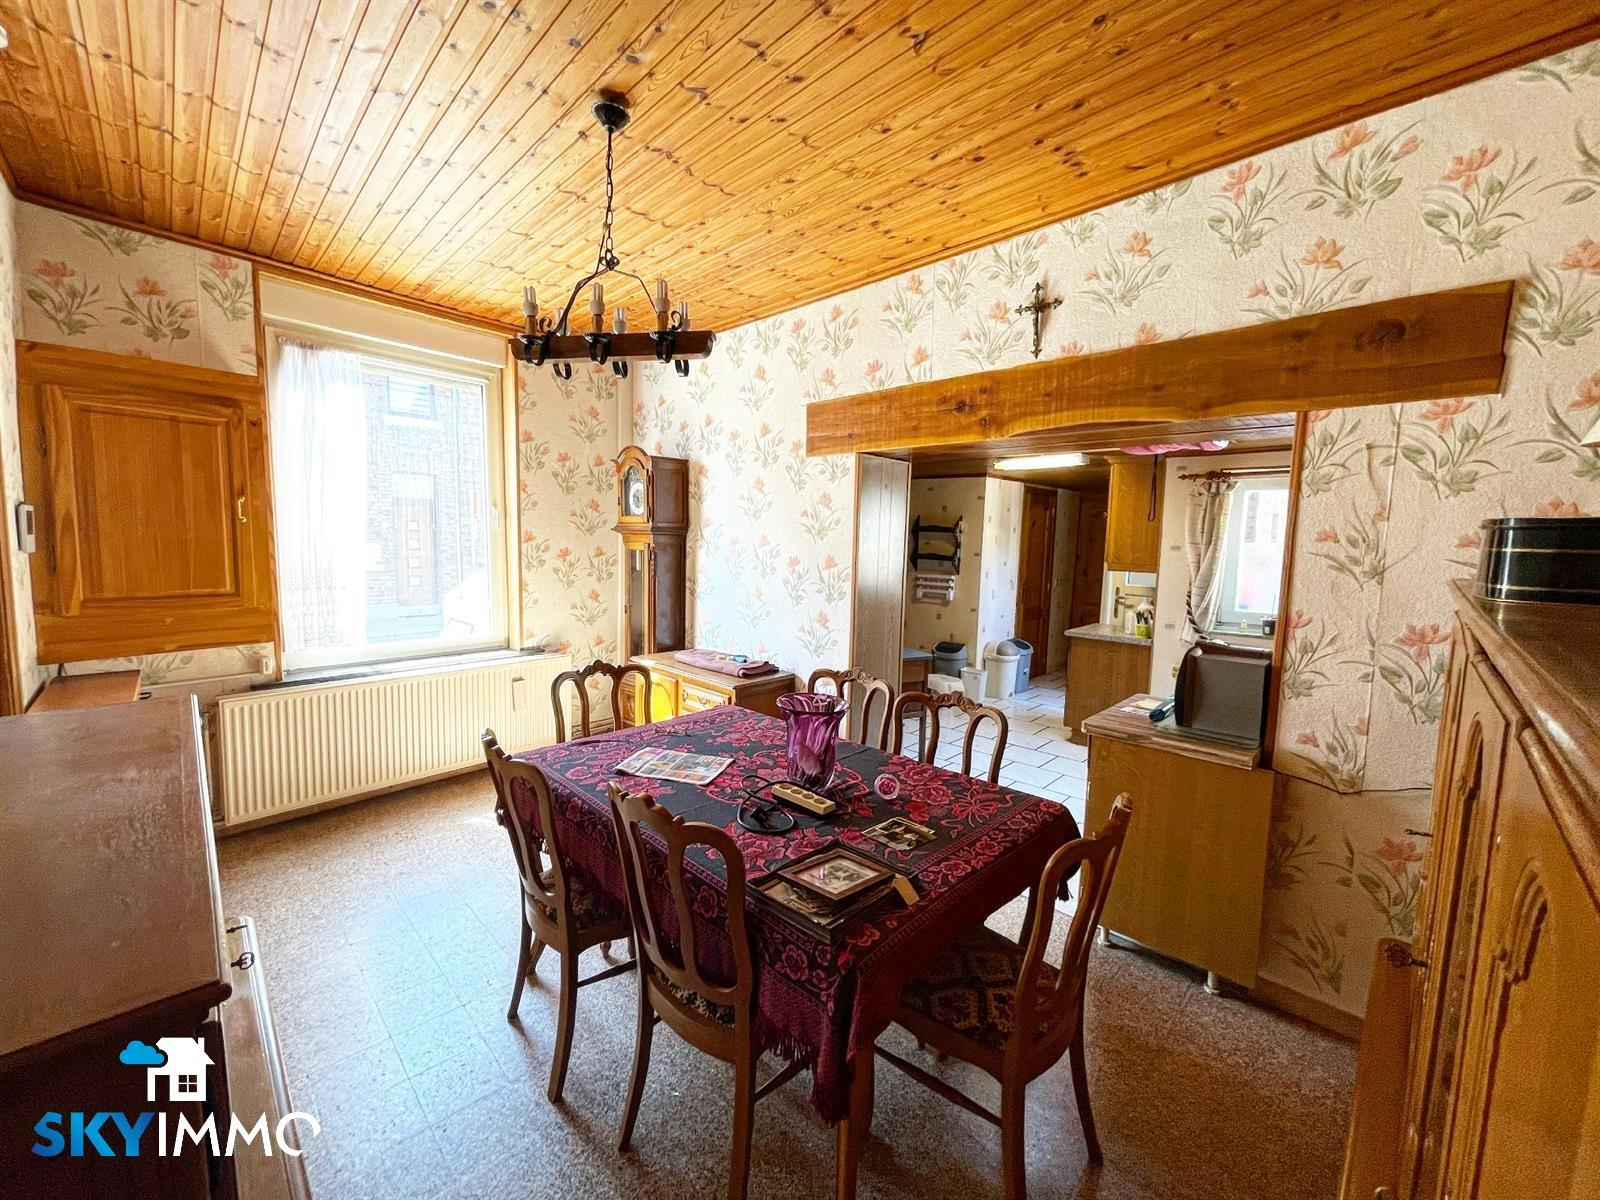 Huis - Flemalle - #4394734-6